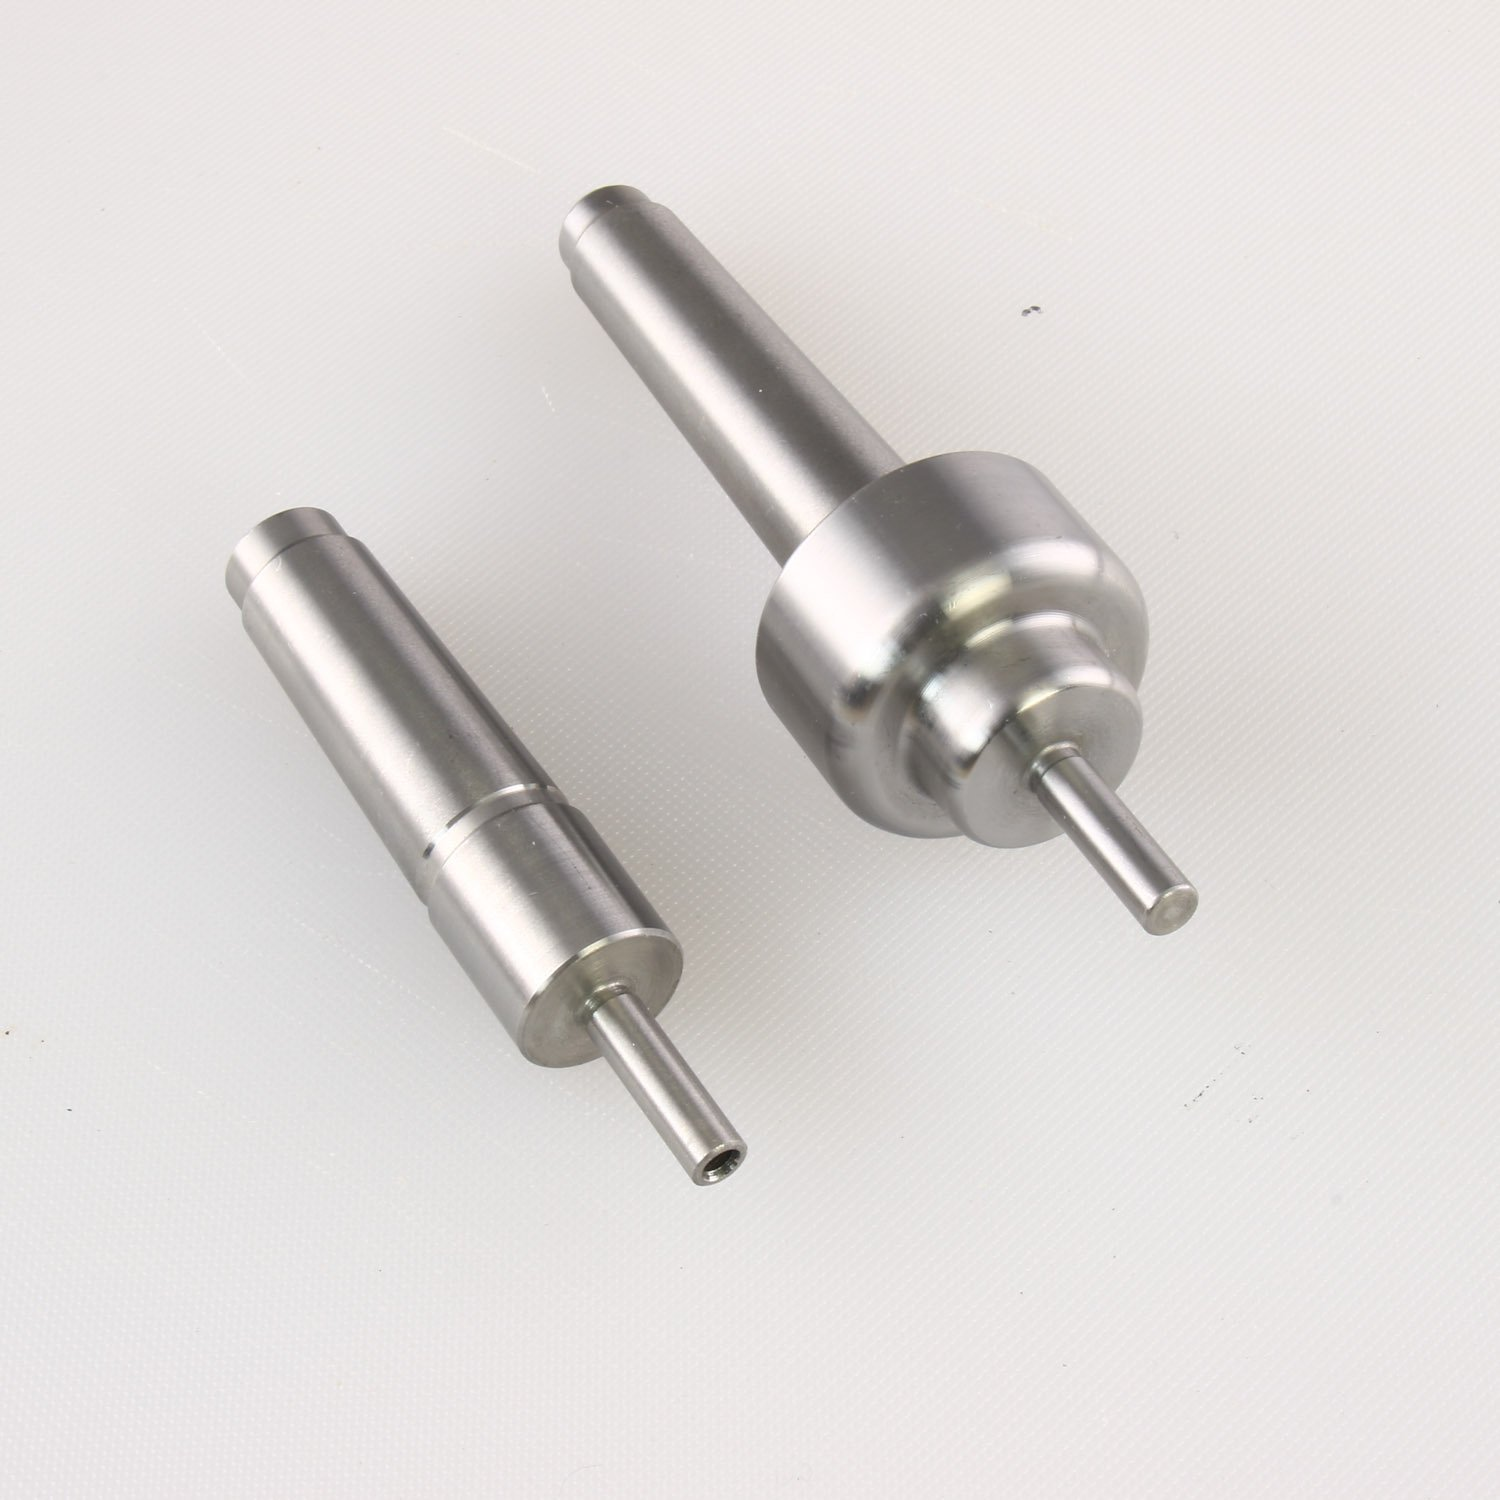 Glsmile Stainless Steel Deburring Tool,Chamfer Tool Deburring External Chamfer Grinding Angle Trimming Chamfering Machine Bit Remove Burr Repairs Tools for Chuck Drill